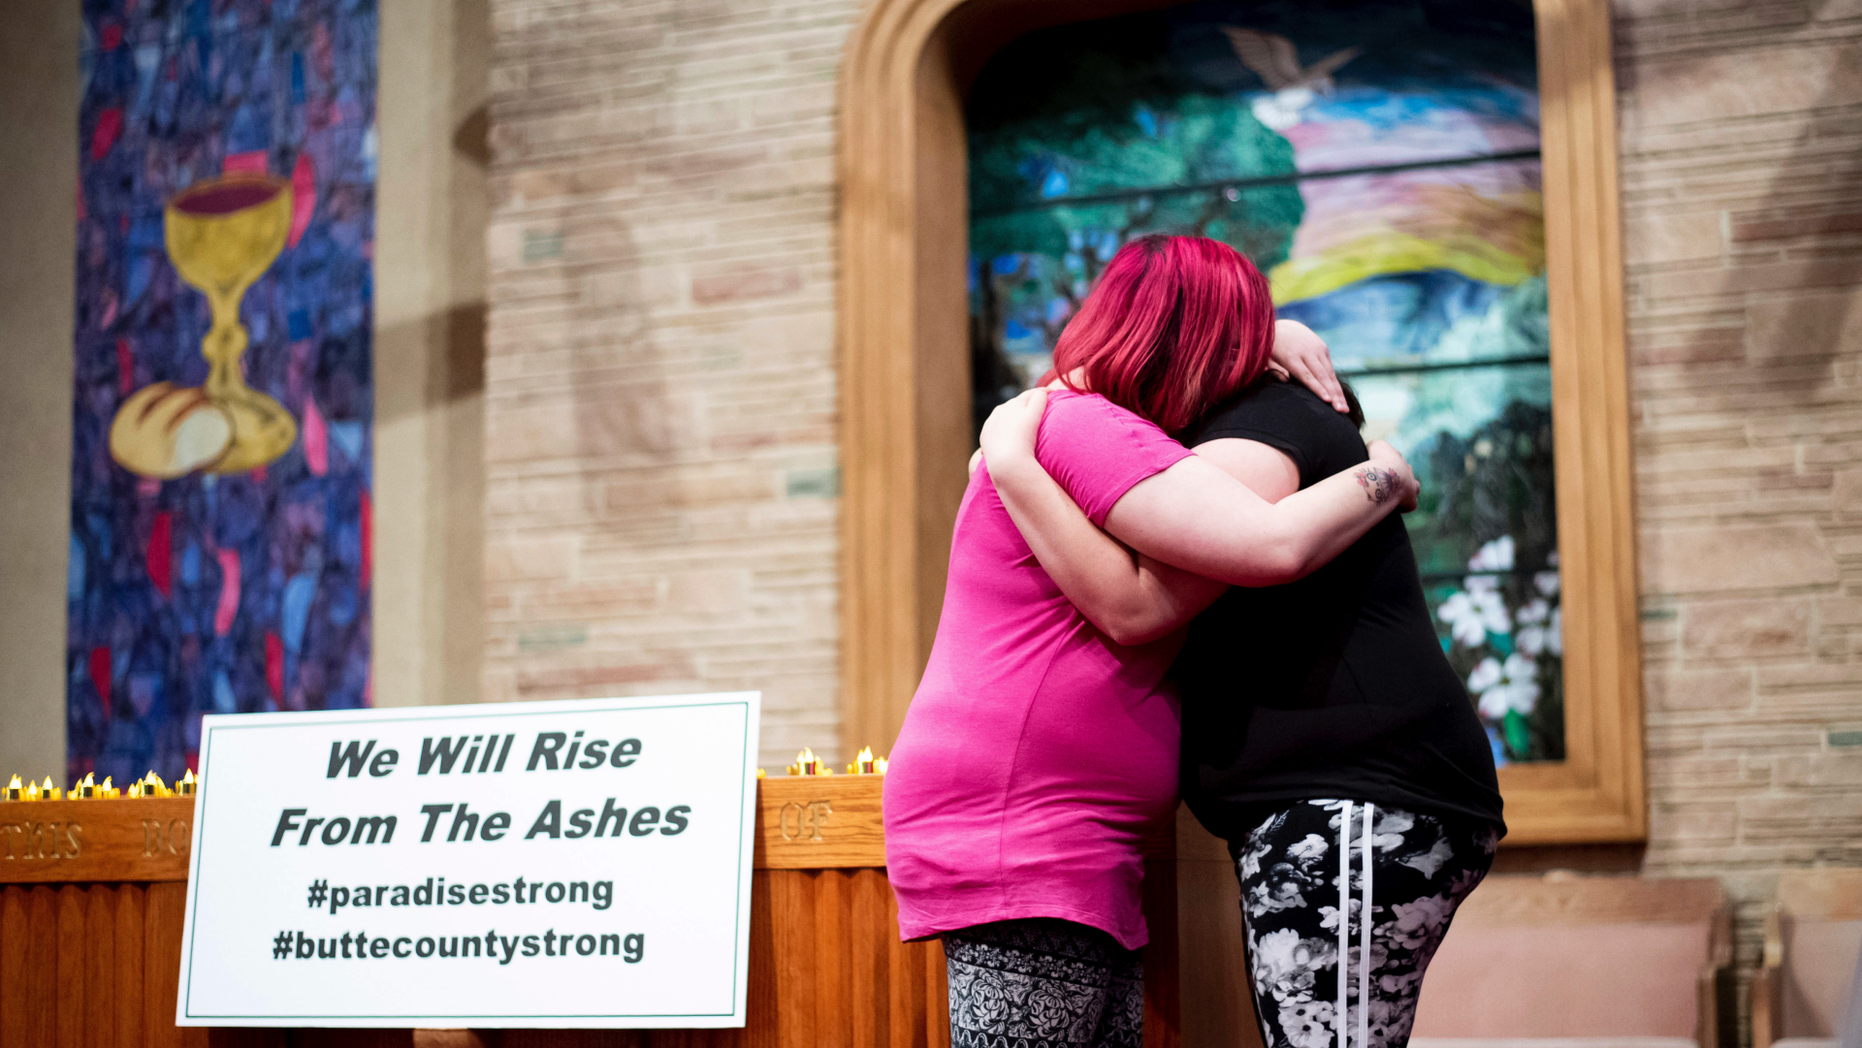 Sisters Alli Benefield, left, and Kassy Parish embrace during a vigil for the lives and community lost to the Camp Fire on Sunday, Nov. 18, 2018, at the First Christian Church of Chico in Chico, Calif. More than 50 people gathered at the memorial for the victims. People hugged and shed tears as Pastor Jesse Kearns recited a prayer for first responders. (AP Photo/Noah Berger, Pool)